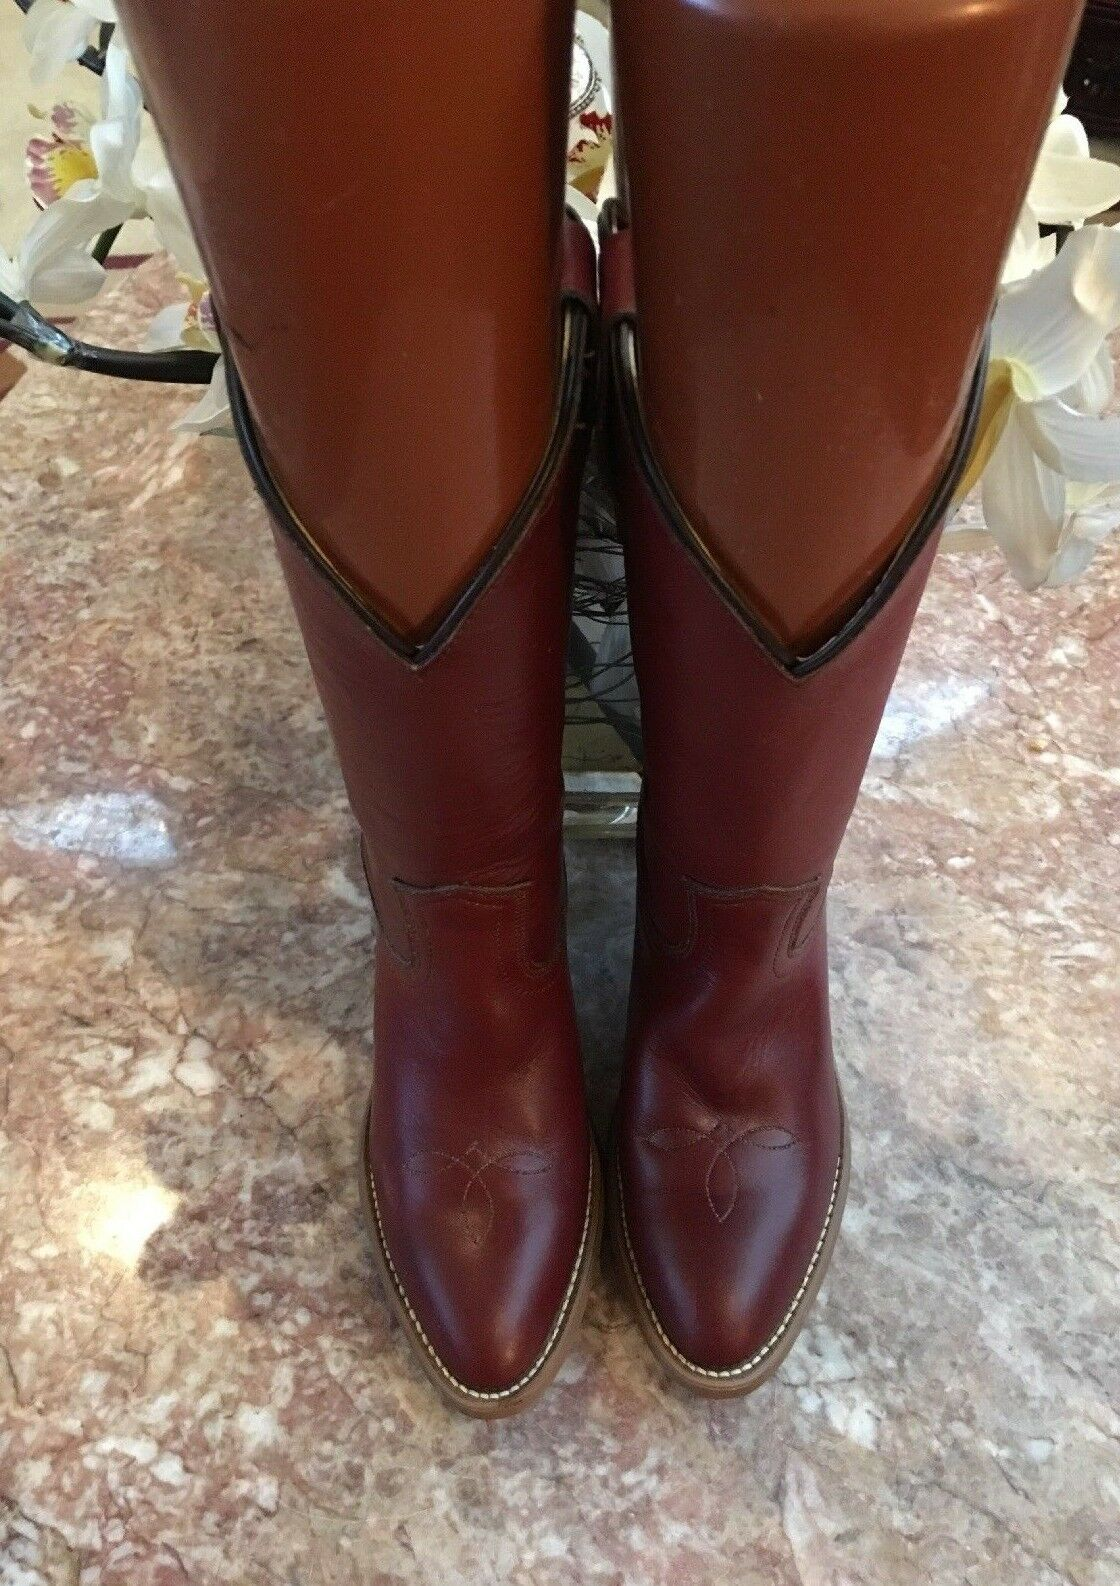 New Frye American Classics Vintage Women's Brown Leather Cowboy Boots Size 5.5B